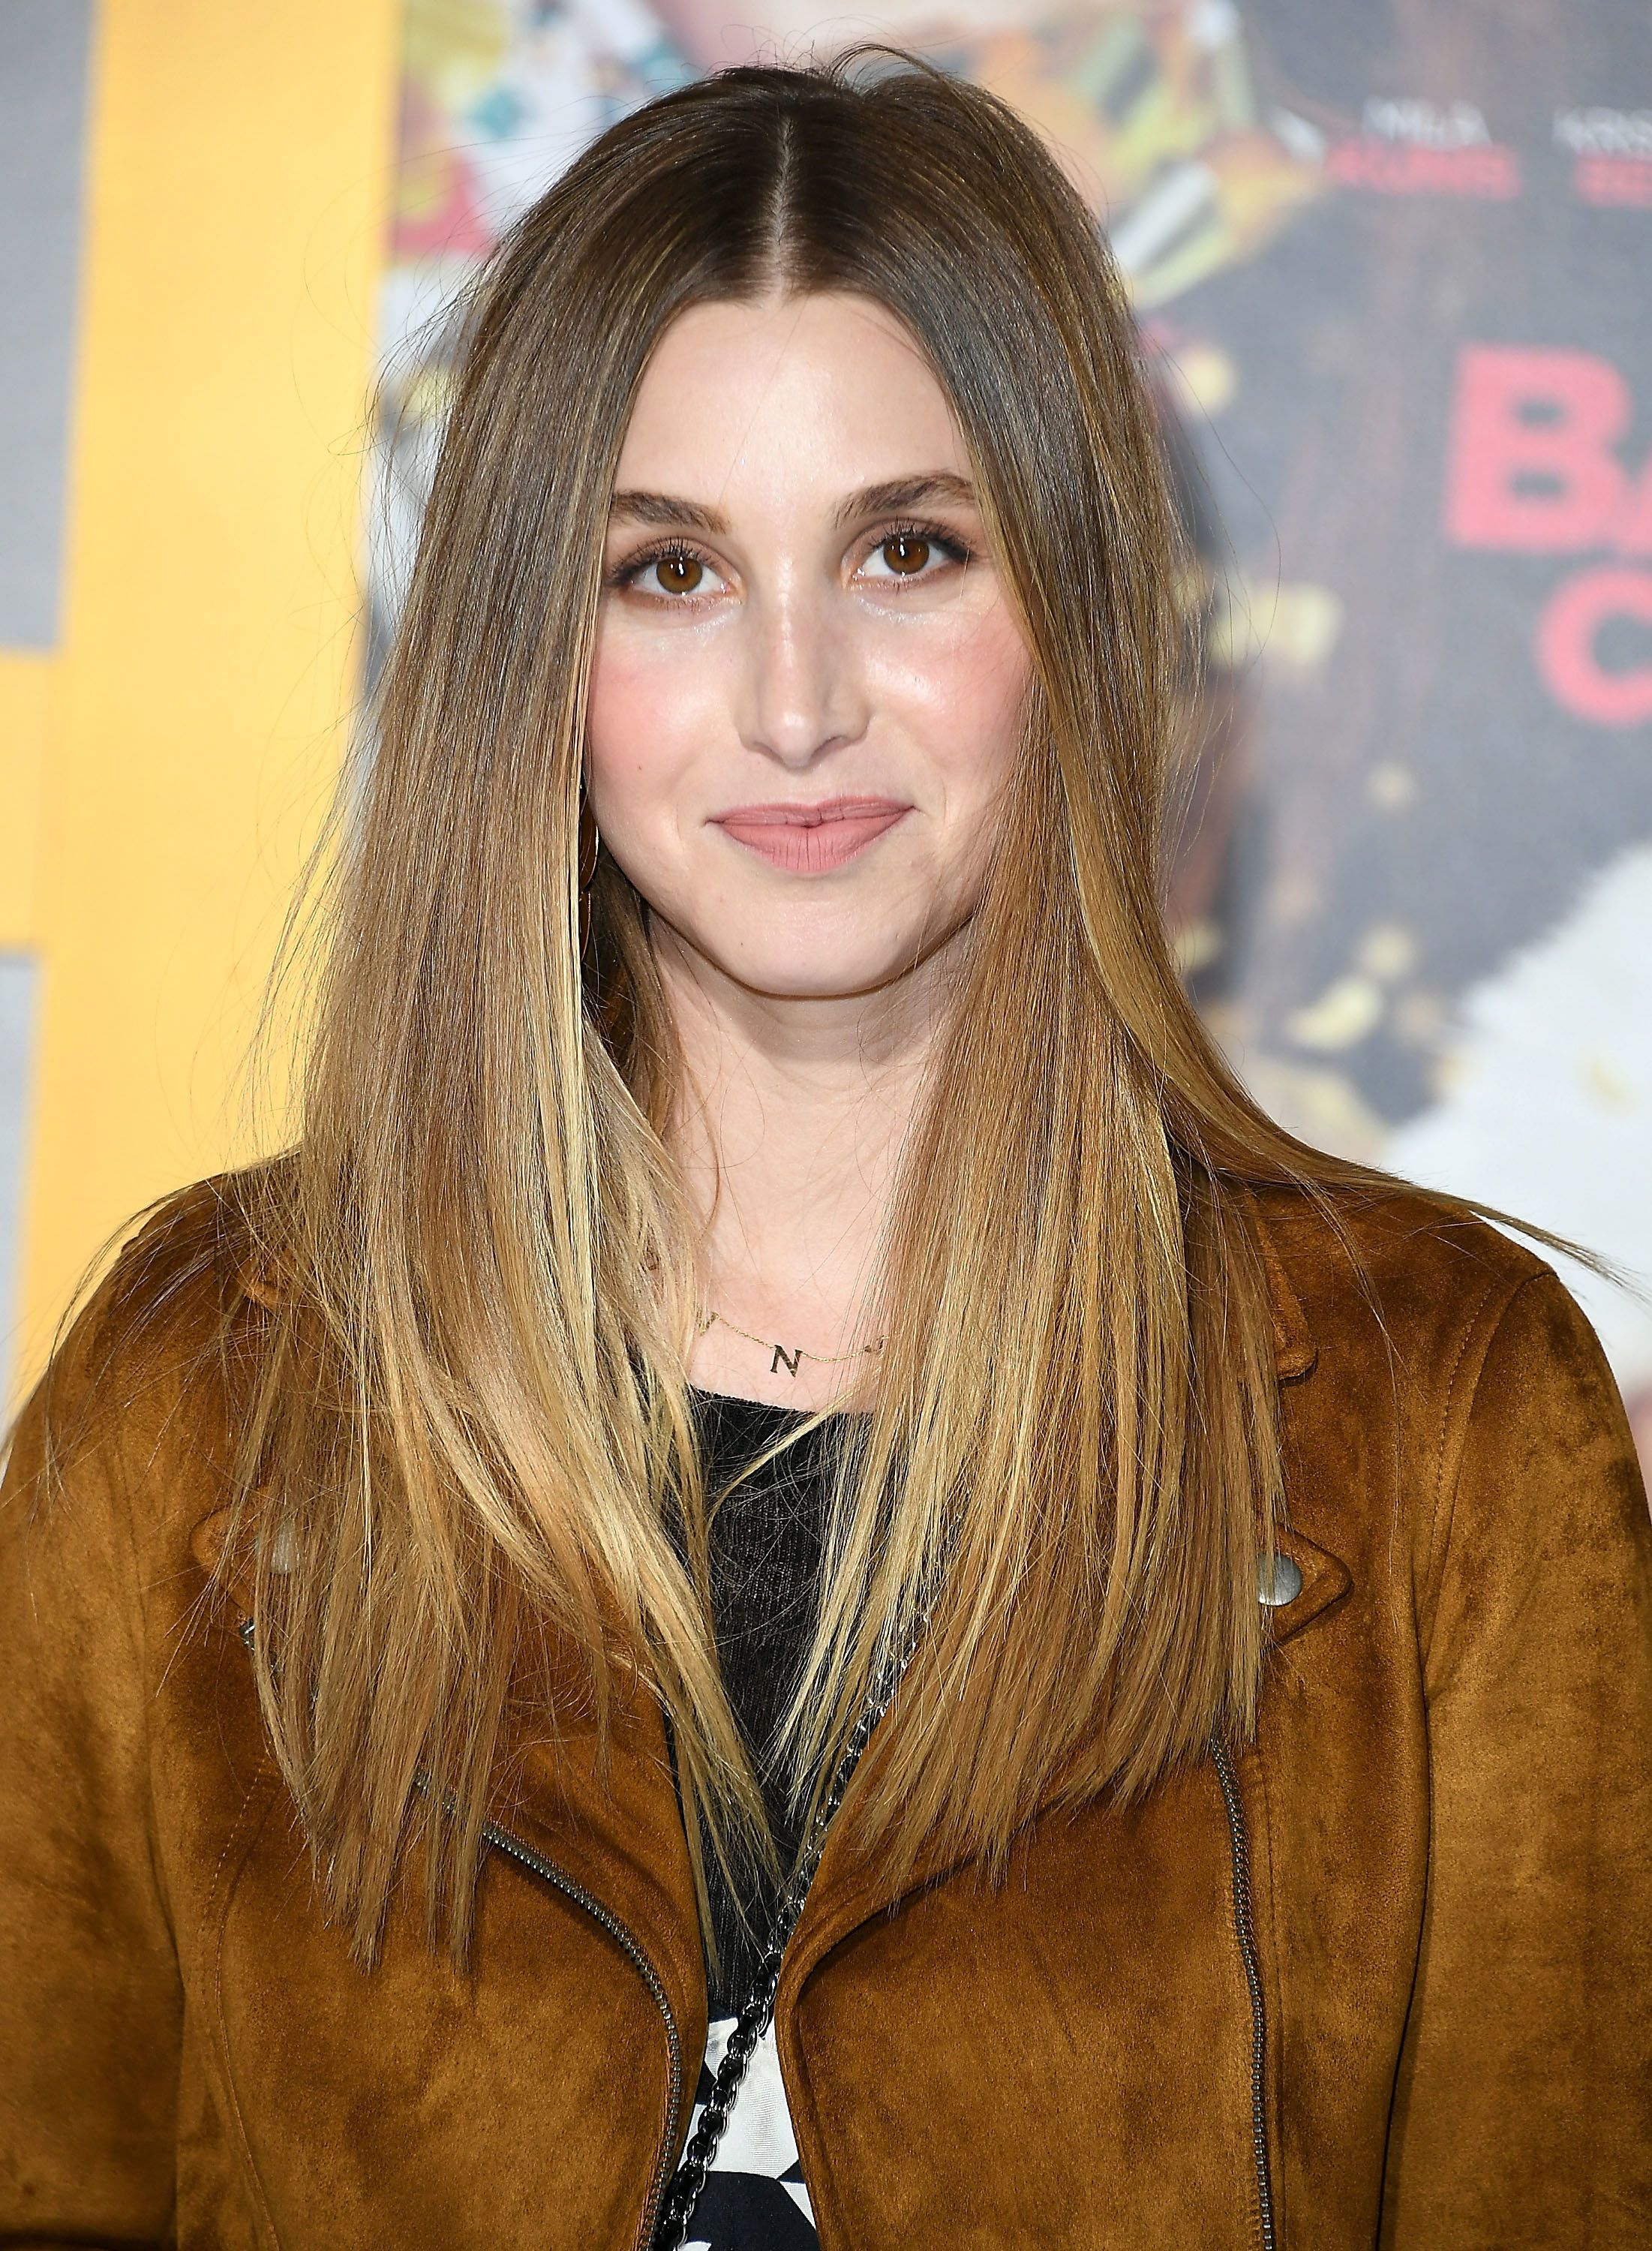 WESTWOOD, CA - OCTOBER 30:  Whitney Port arrives at the Premiere Of STX Entertainment's 'A Bad Moms Christmas'  at Regency Village Theatre on October 30, 2017 in Westwood, California.  (Photo by Steve Granitz/WireImage)